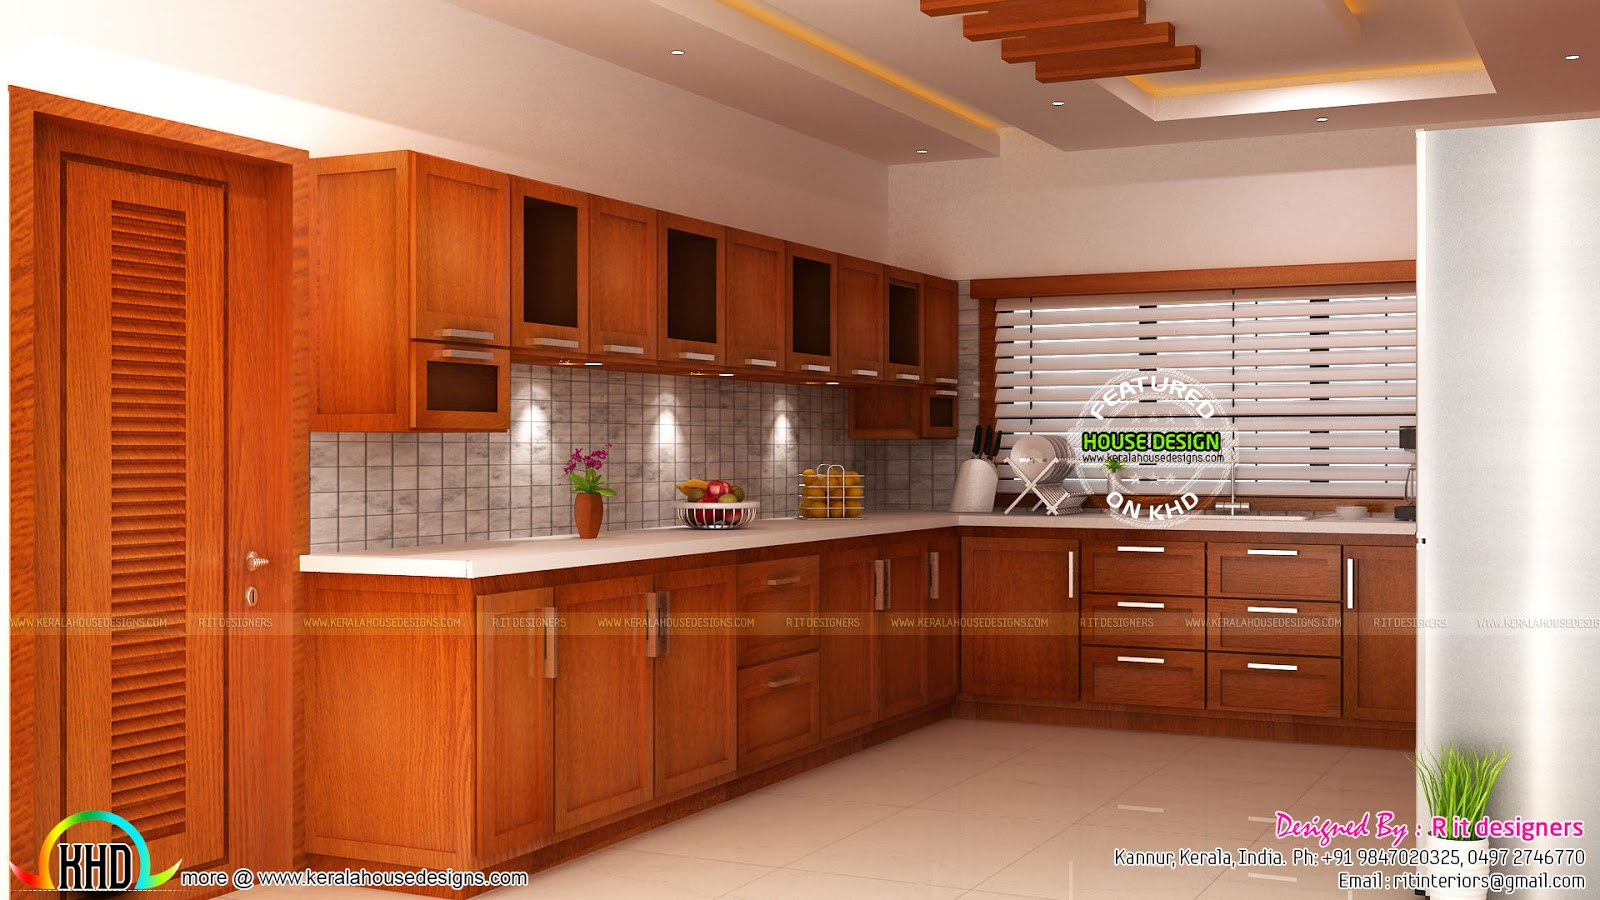 Kitchen Interior Design: Modular Kitchen, Living And Bedroom Interior